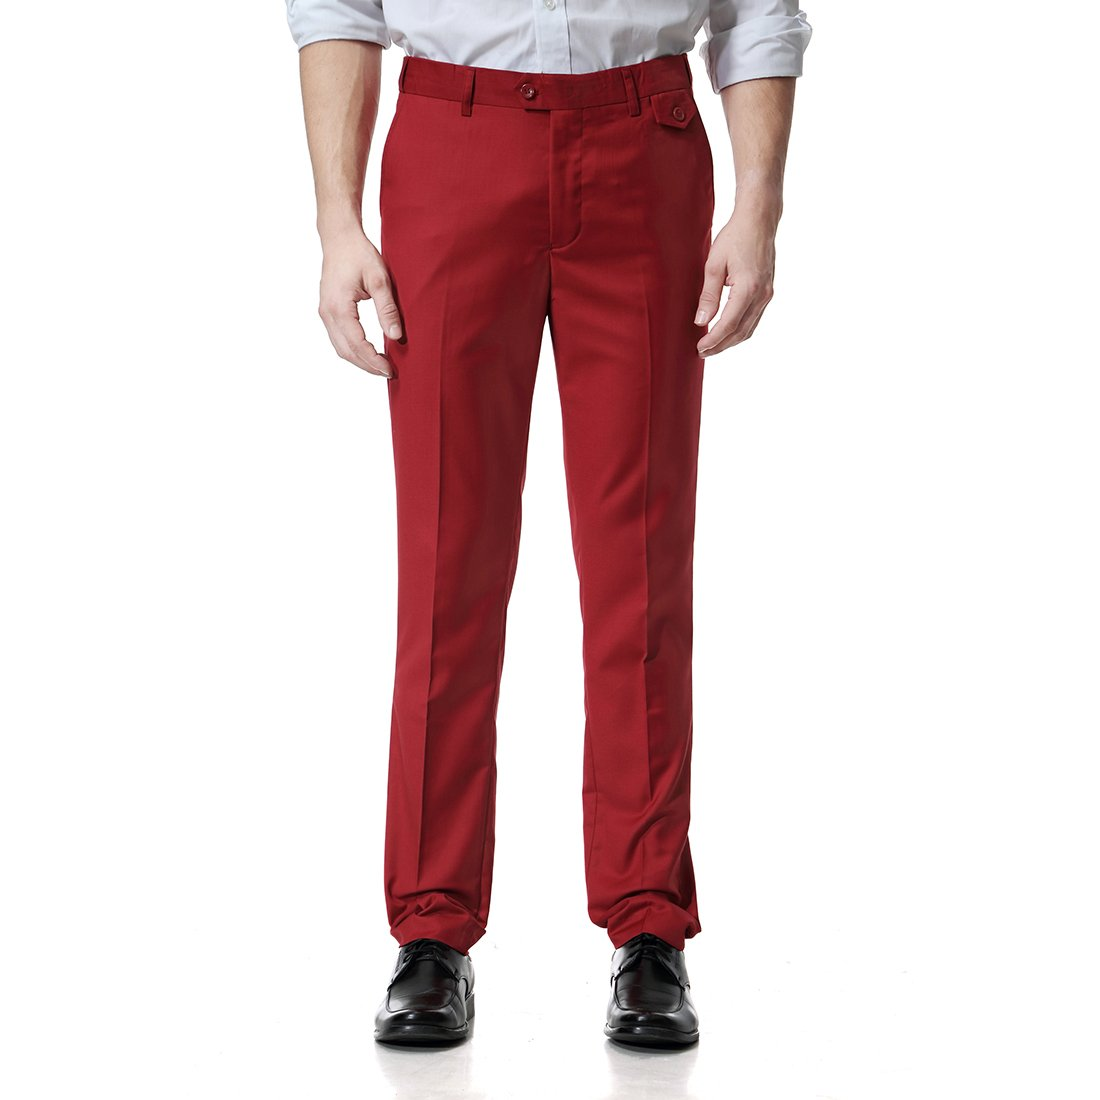 WEEN CHARM Mens Dress Pants Premium Expandable-Waist Straight-Fit Flat Front Chino Pants